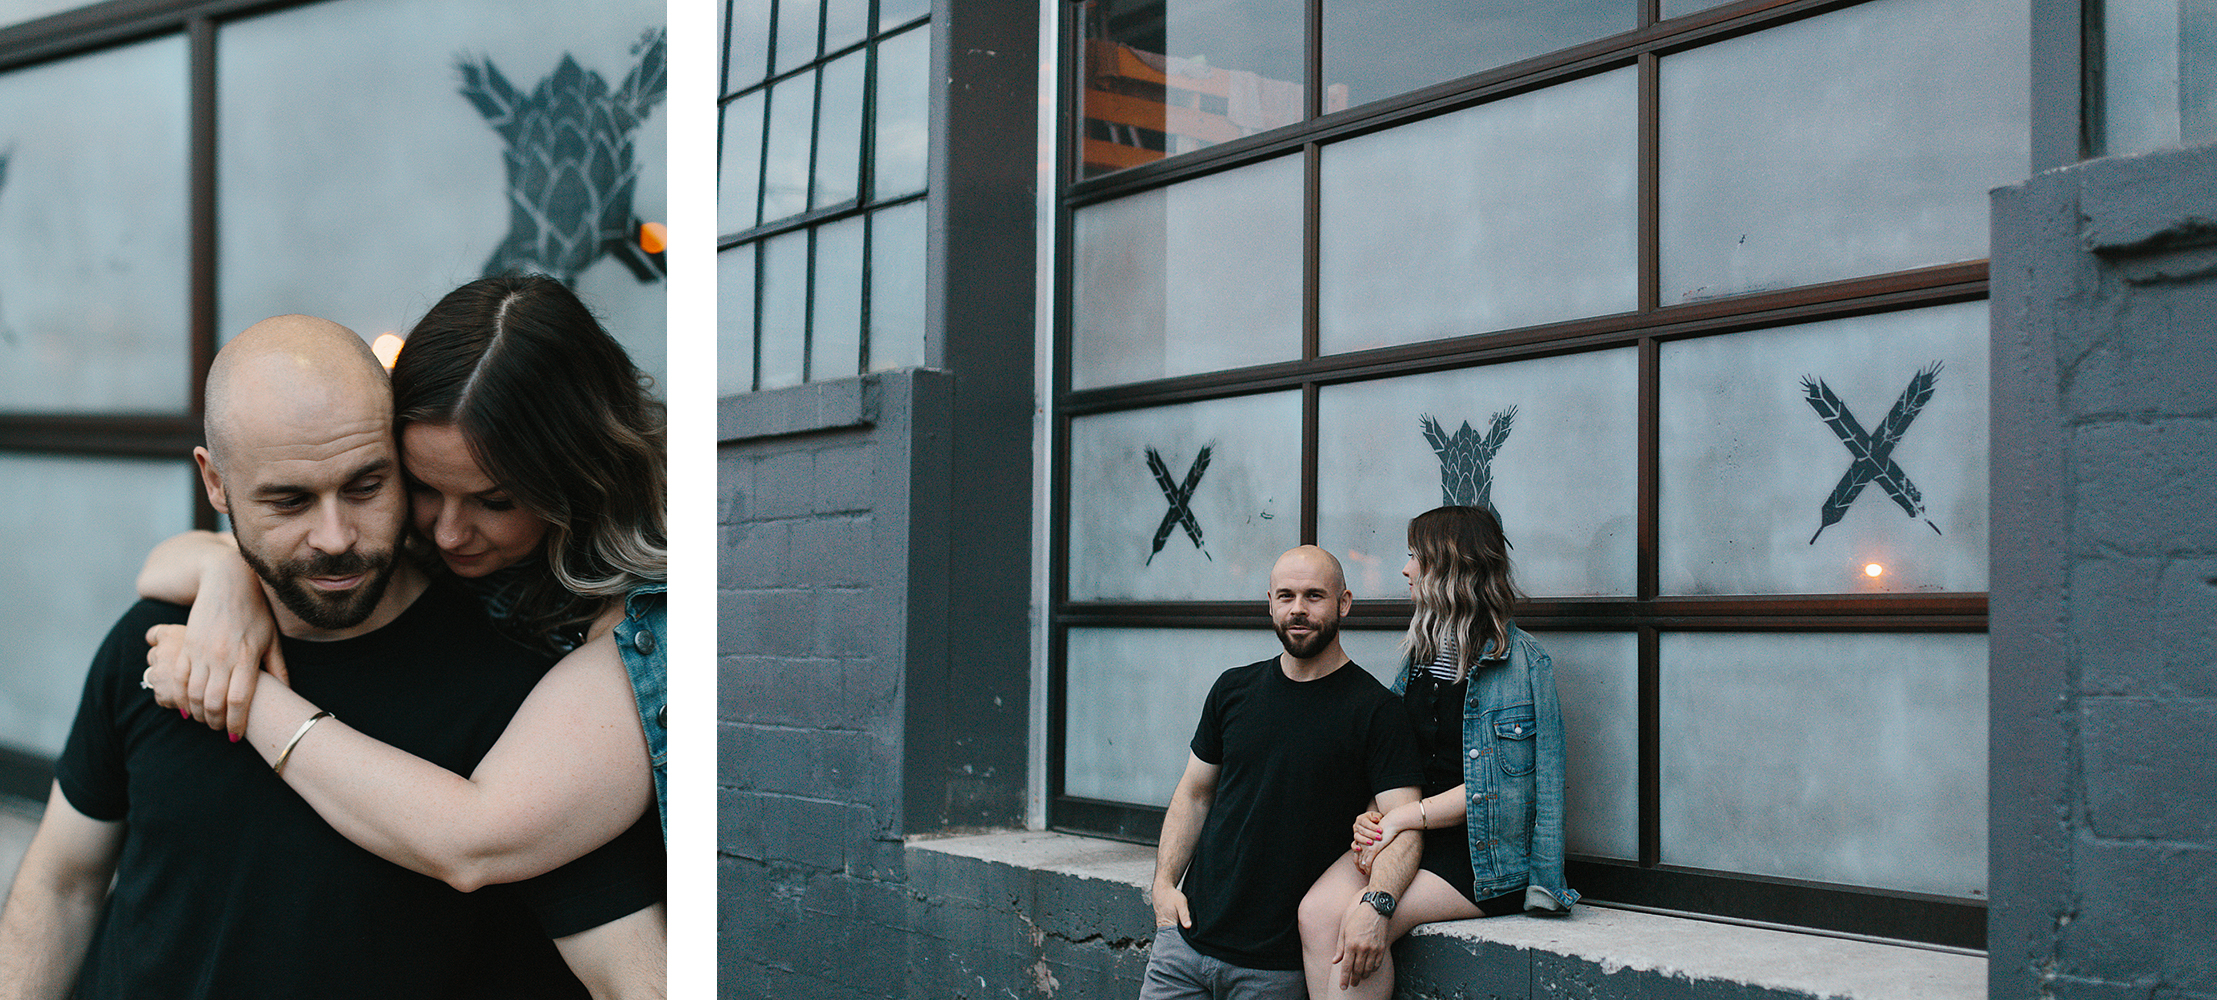 spread-10-downtown-toronto-wedding-photographer-ryanne-hollies-photography-junebug-wedding--natural-photos-engaged-in-toronto-rainhardt-brewery-engagement-photos-fun-enjoyable-badass-engagement-inspiration-trendy-hipster-cool.jpg